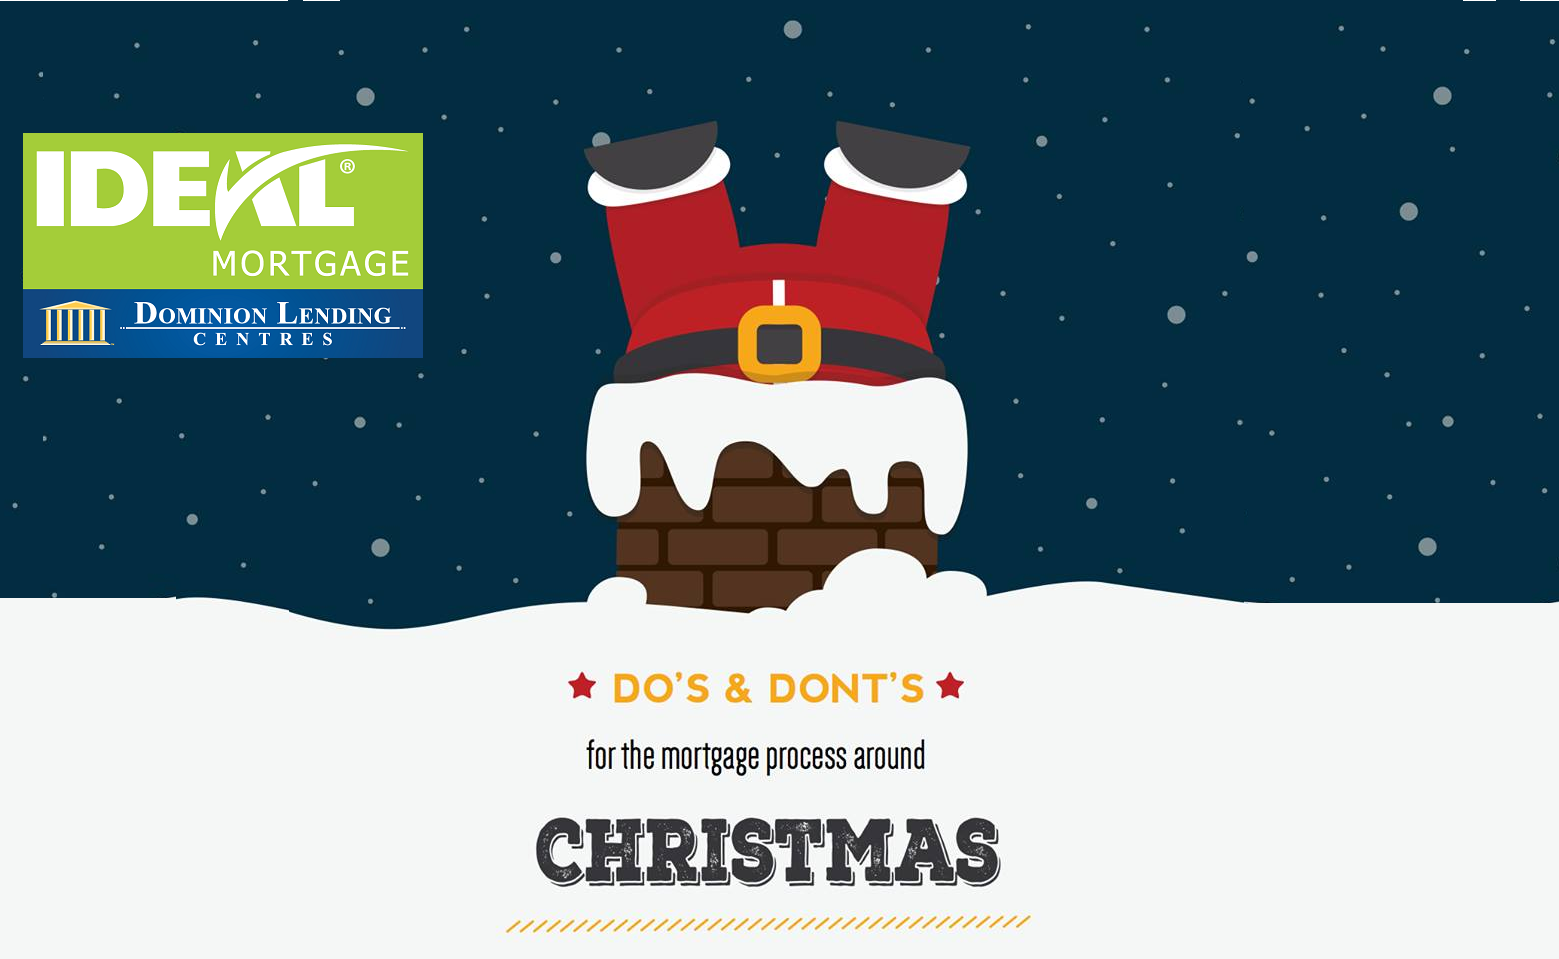 Do's and Don'ts for the Mortgage Process around CHRISTMAS